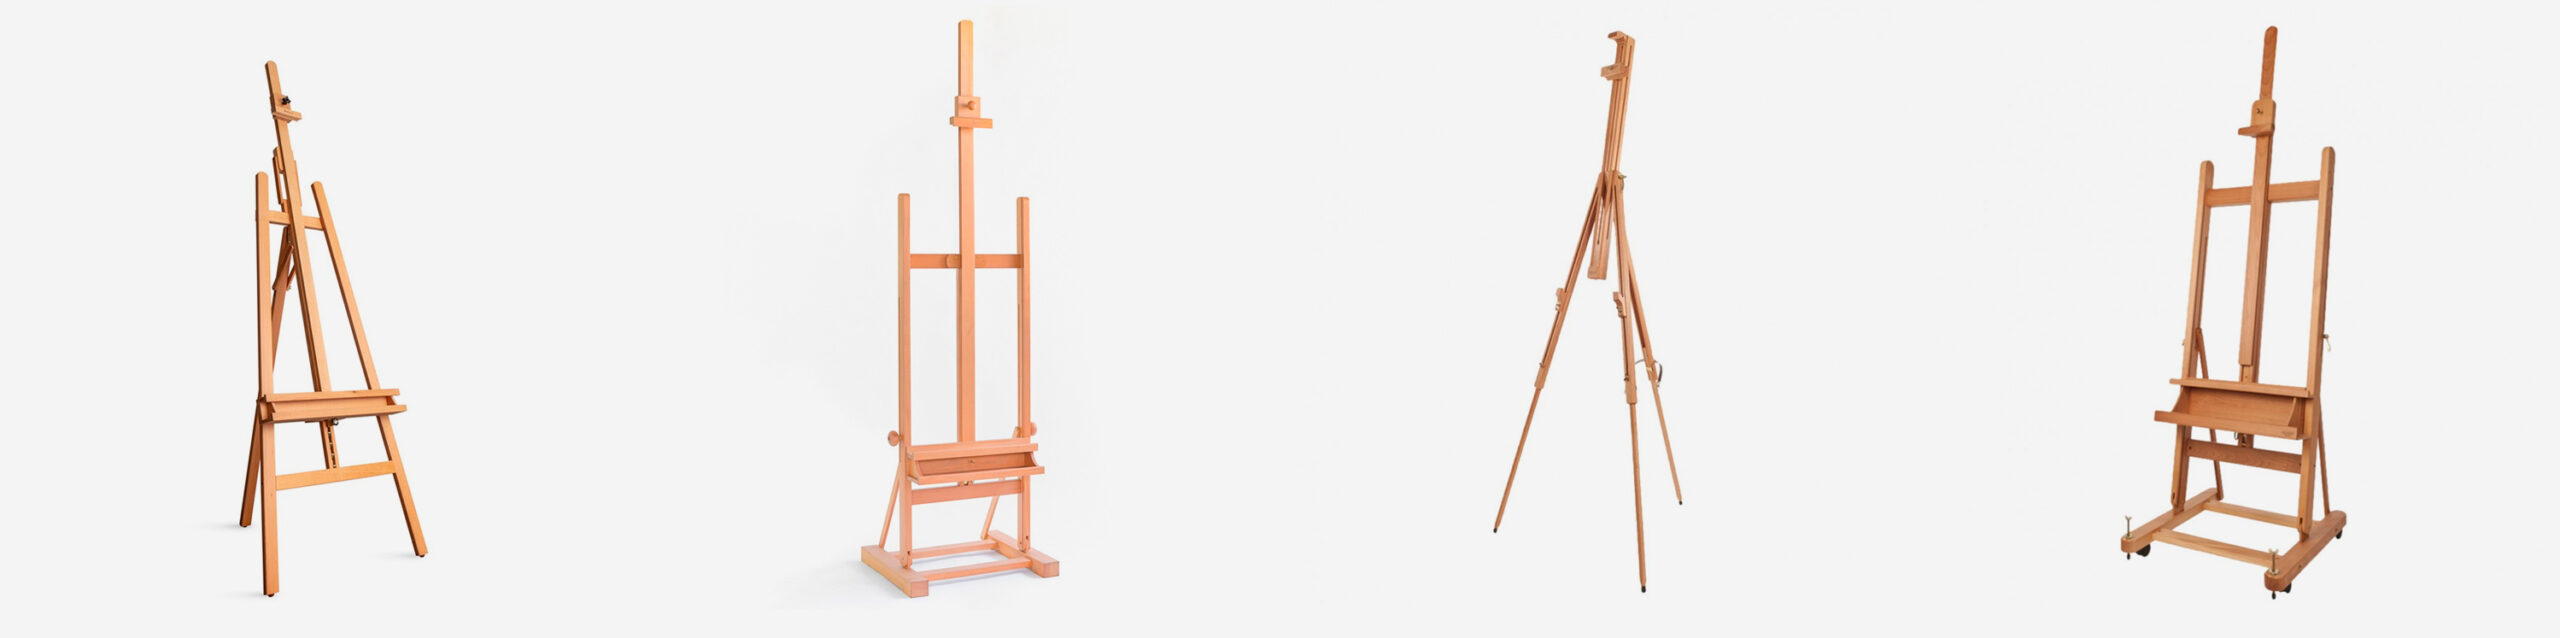 Top Image: A selection of Jackson's easels L-R: Jackson's A-Frame Studio Easel, Cappelletto Medium Studio Easel, Mabef Tivoli Field Easel, Mabef Roma Studio Easel